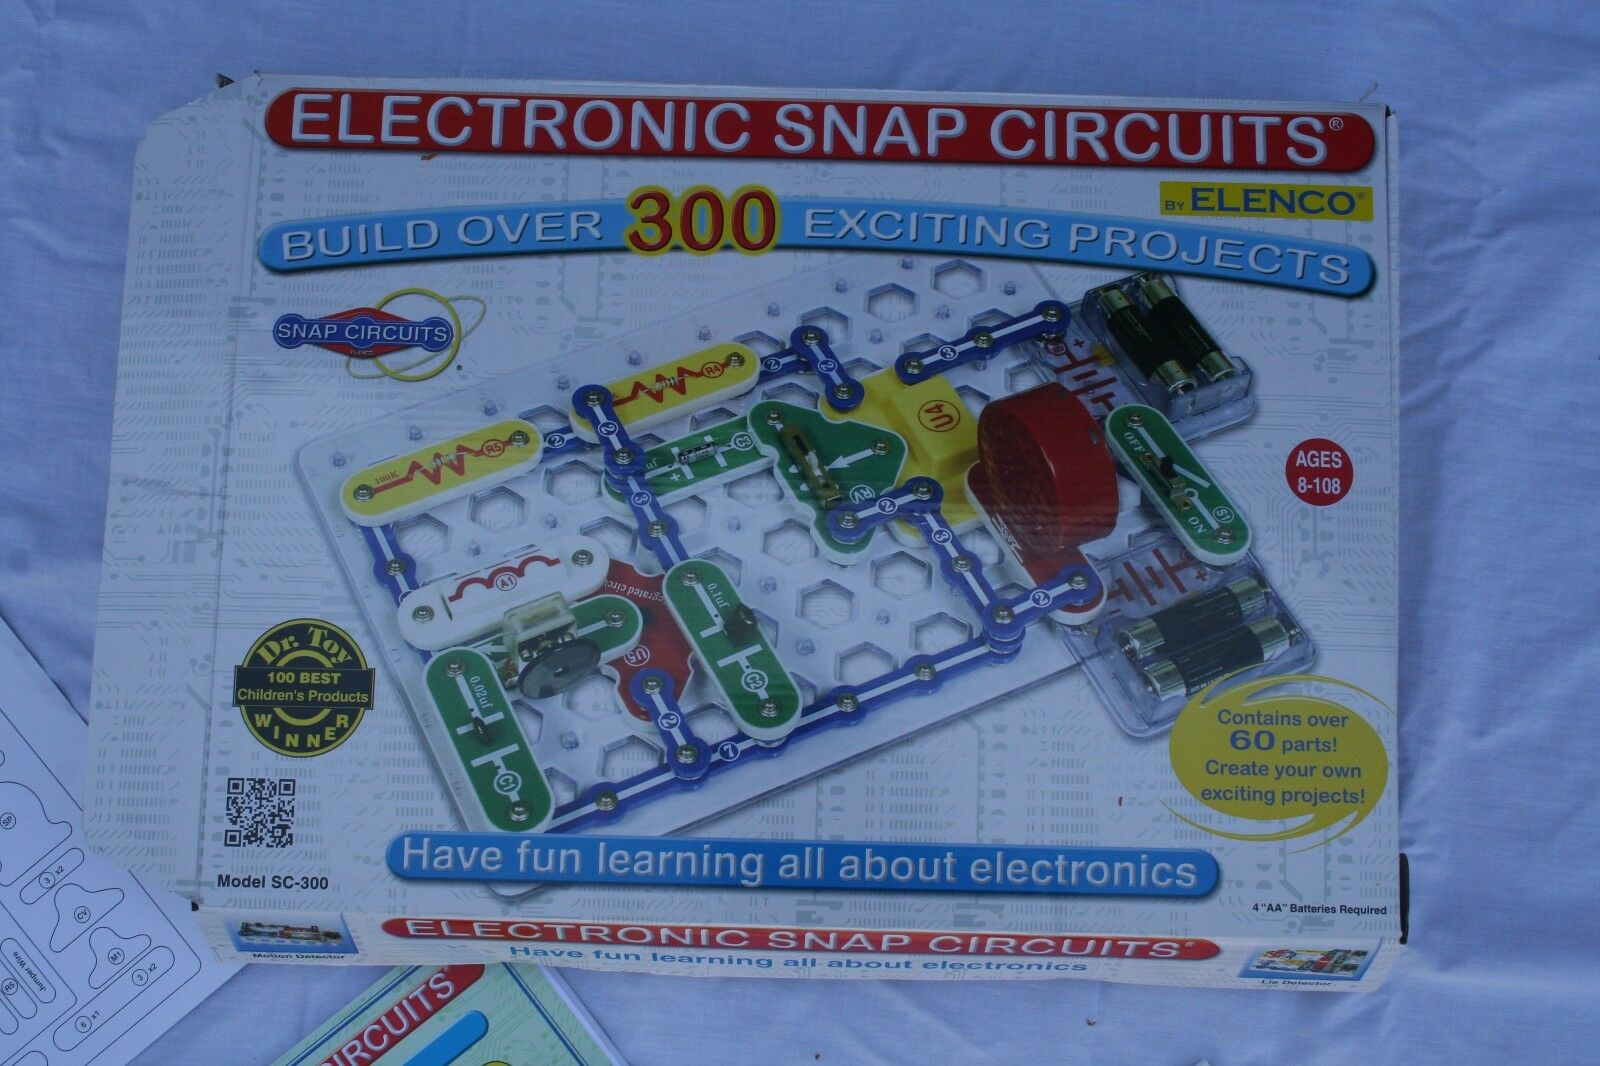 Science Nature Snap Circuits Jr Sc 100 Electronics Discovery Kit New Factory Sealed Electronic Model 300 By Elenco Complete Instruction Manuals